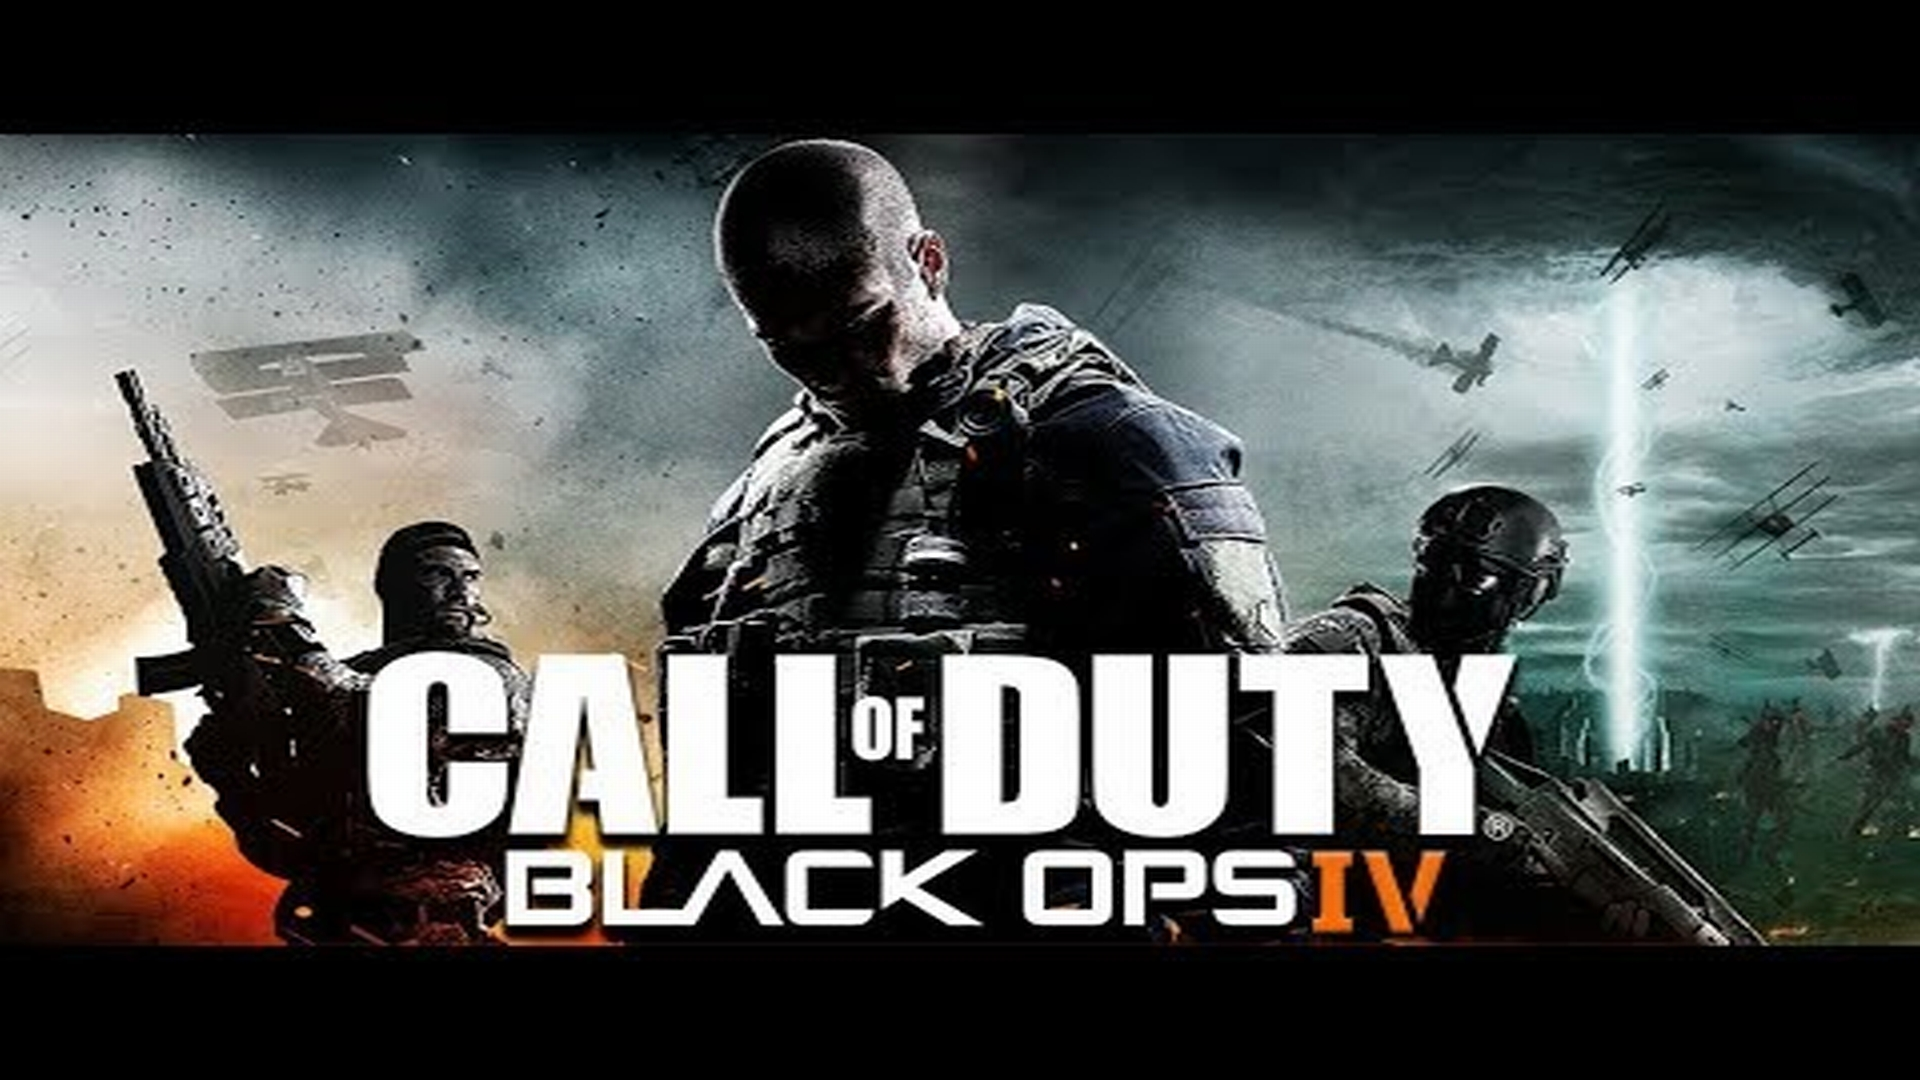 Call Of Duty Hd Wallpapers 1080p Posted By Michelle Peltier